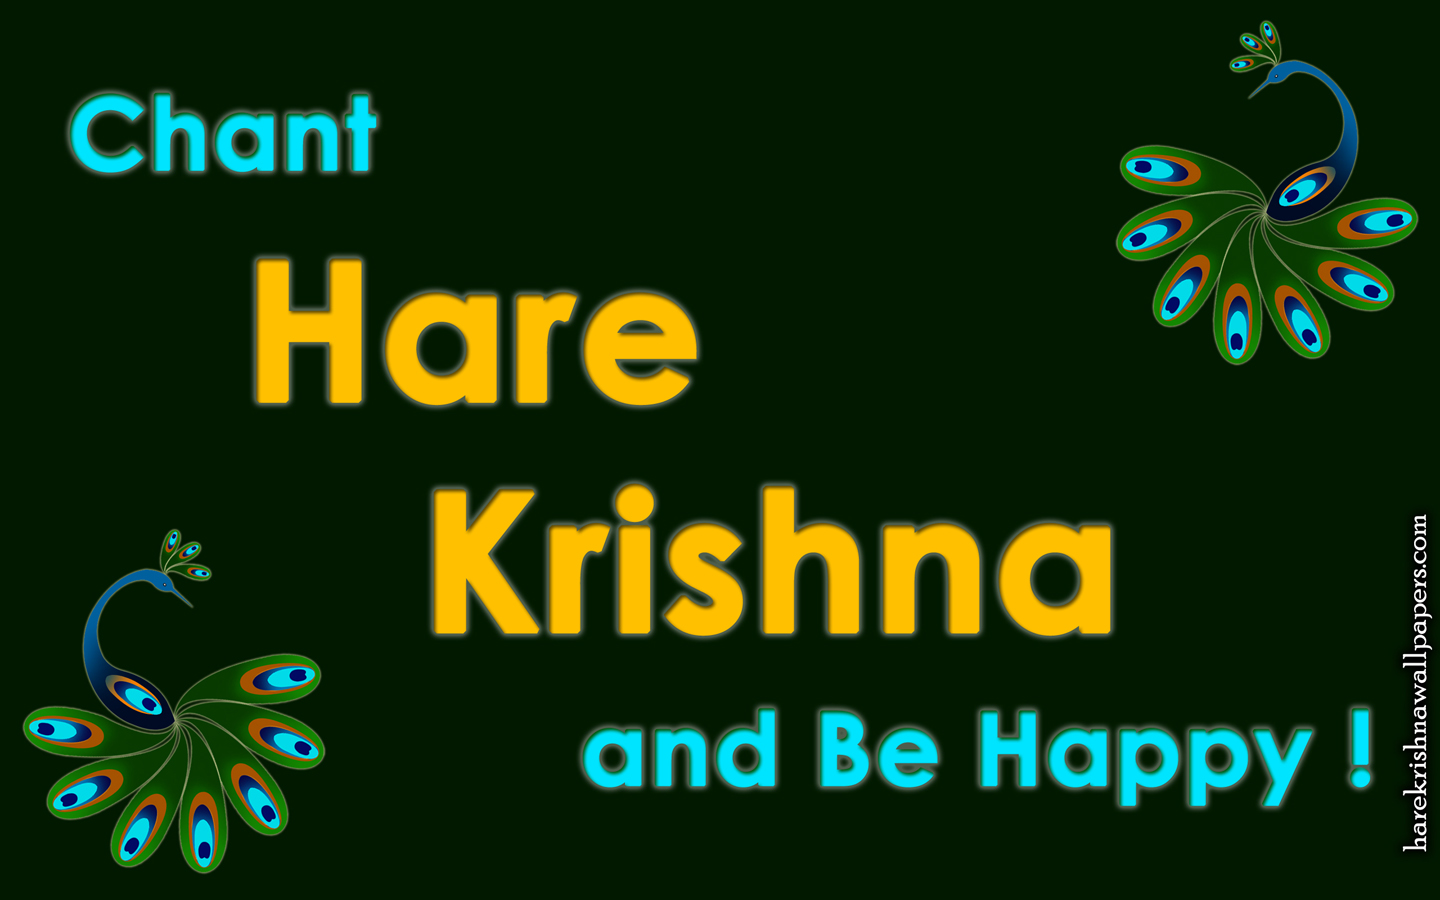 Chant Hare Krishna and be happy Wallpaper (006) Size 1440x900 Download